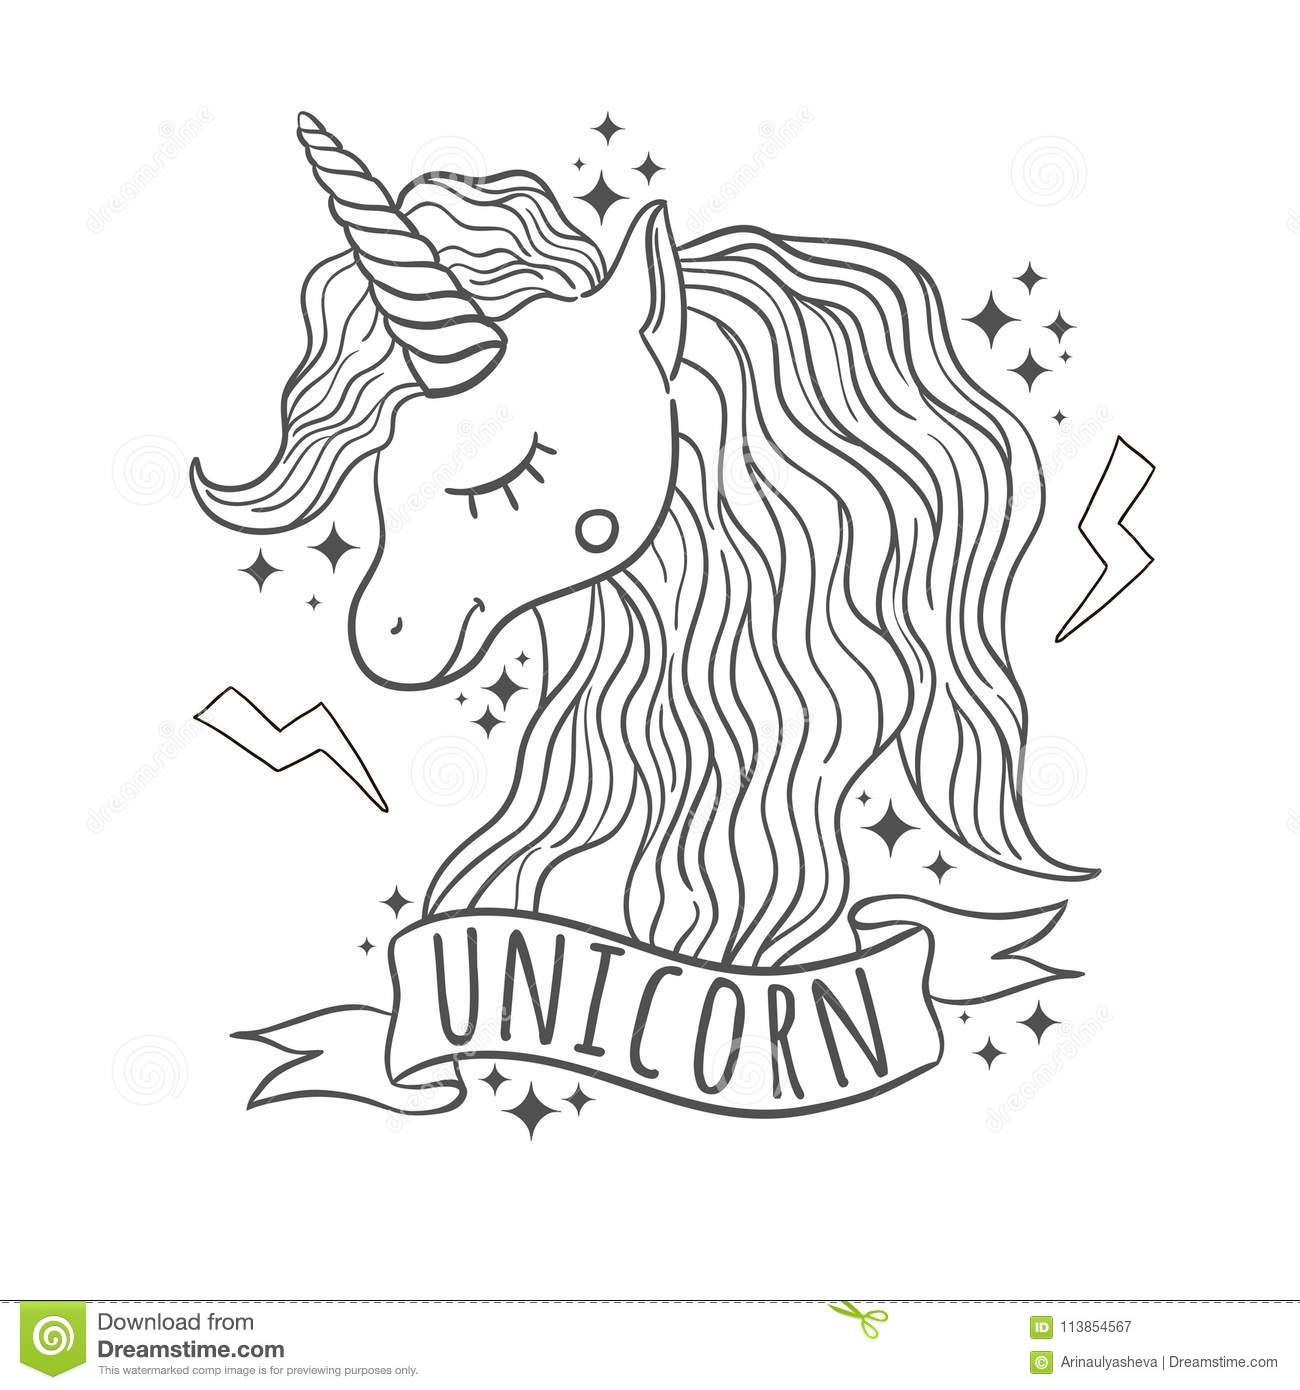 Cute Unicorn For Prints White Background Stock Illustration